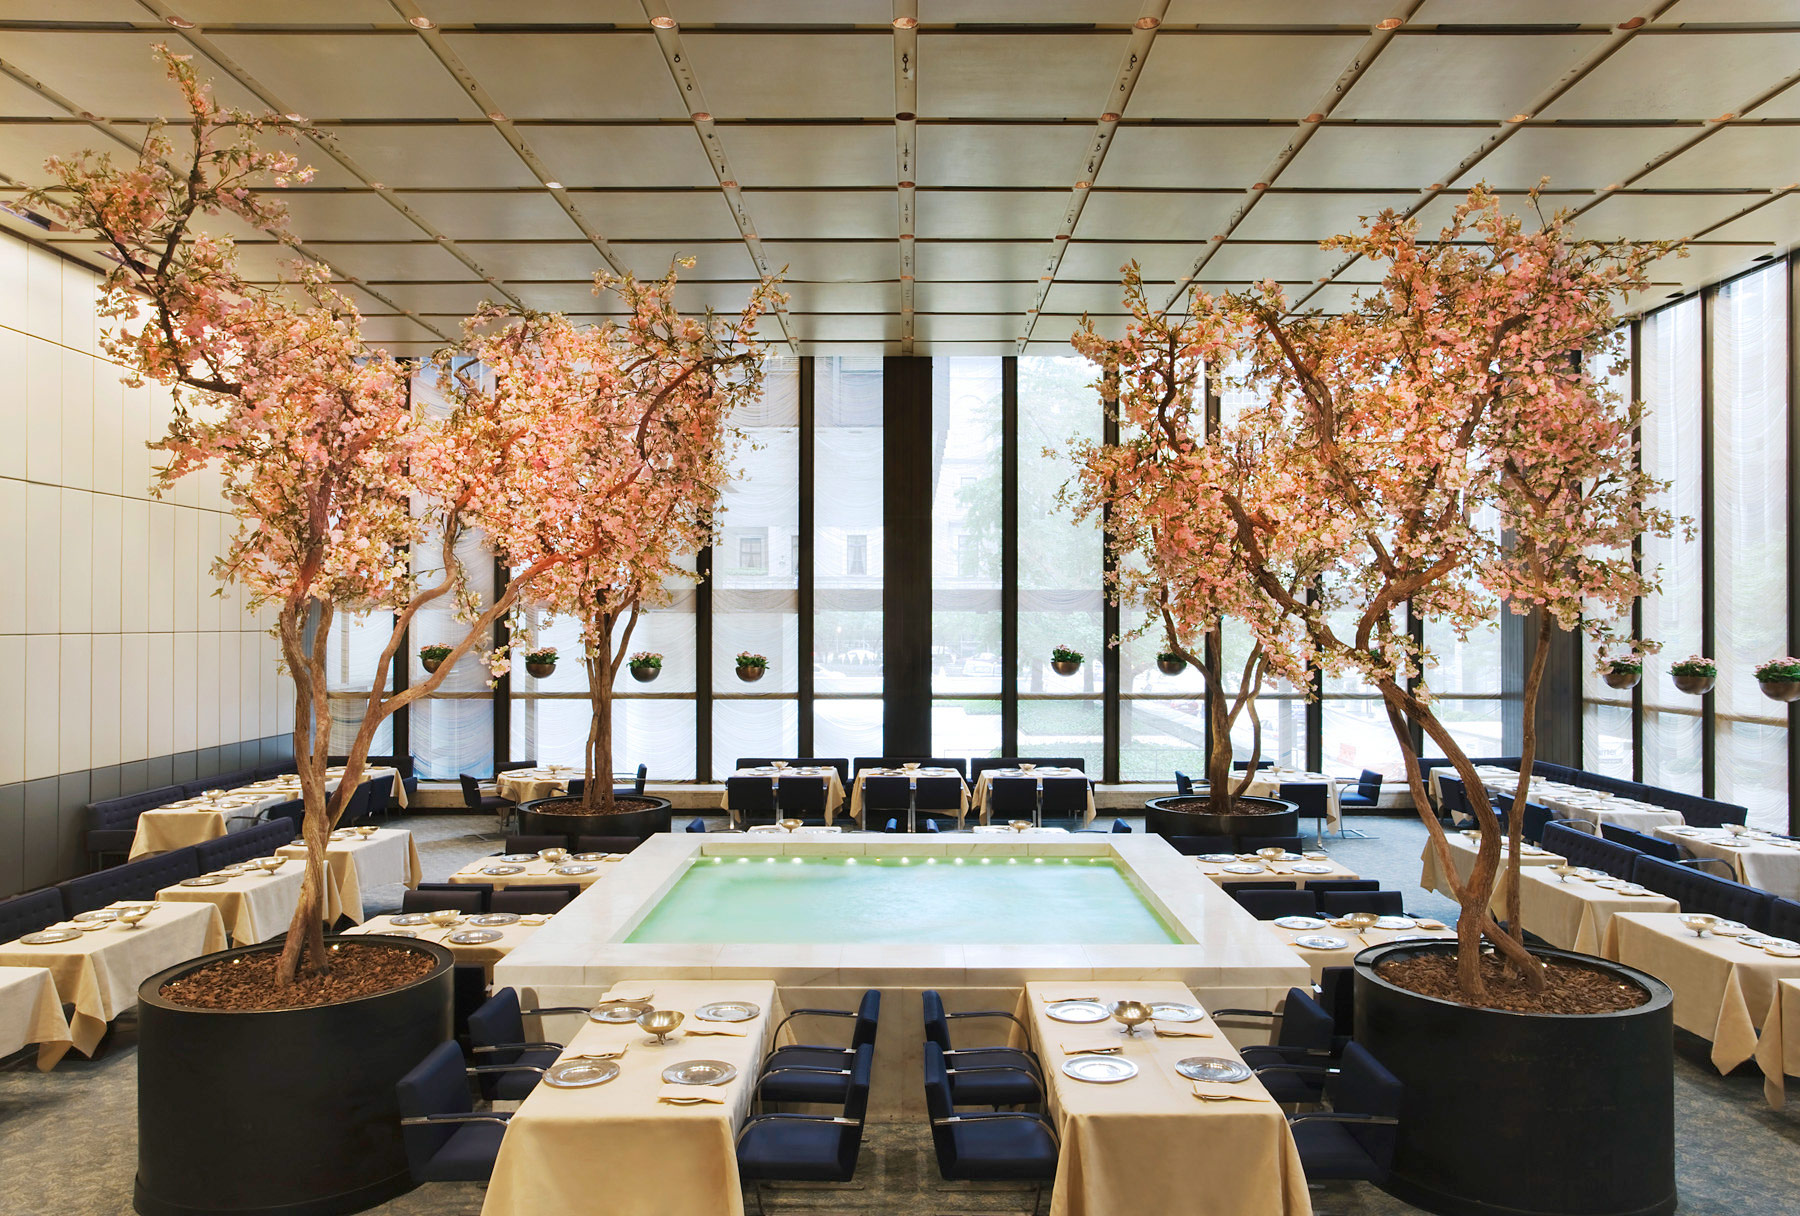 Wright_Four_Seasons_Restaurant_9-cr-Jennifer-Calais-Smith.jpg